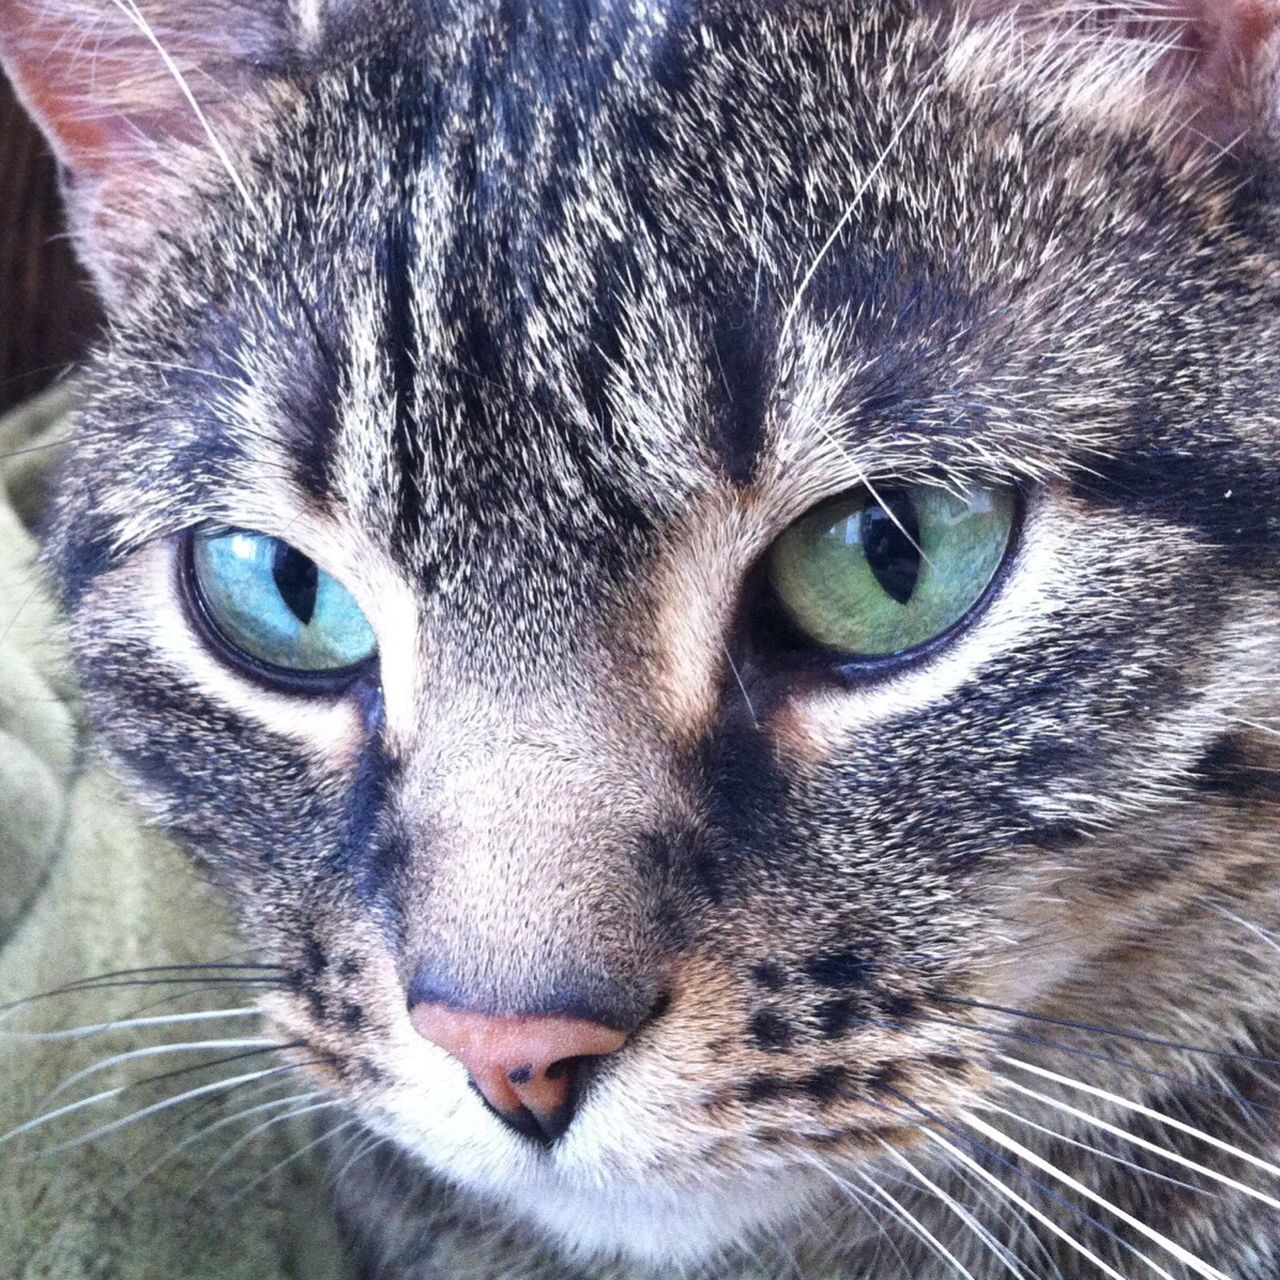 Domestic Cat Pets Animal Themes Looking At Camera Feline Portrait Close-up Mammal One Animal Domestic Animals Green Green Eyes Fur Tabby Tabby Cat Relaxing Hair Whisker Animal Head  Animal Eye No People Indoors  Day